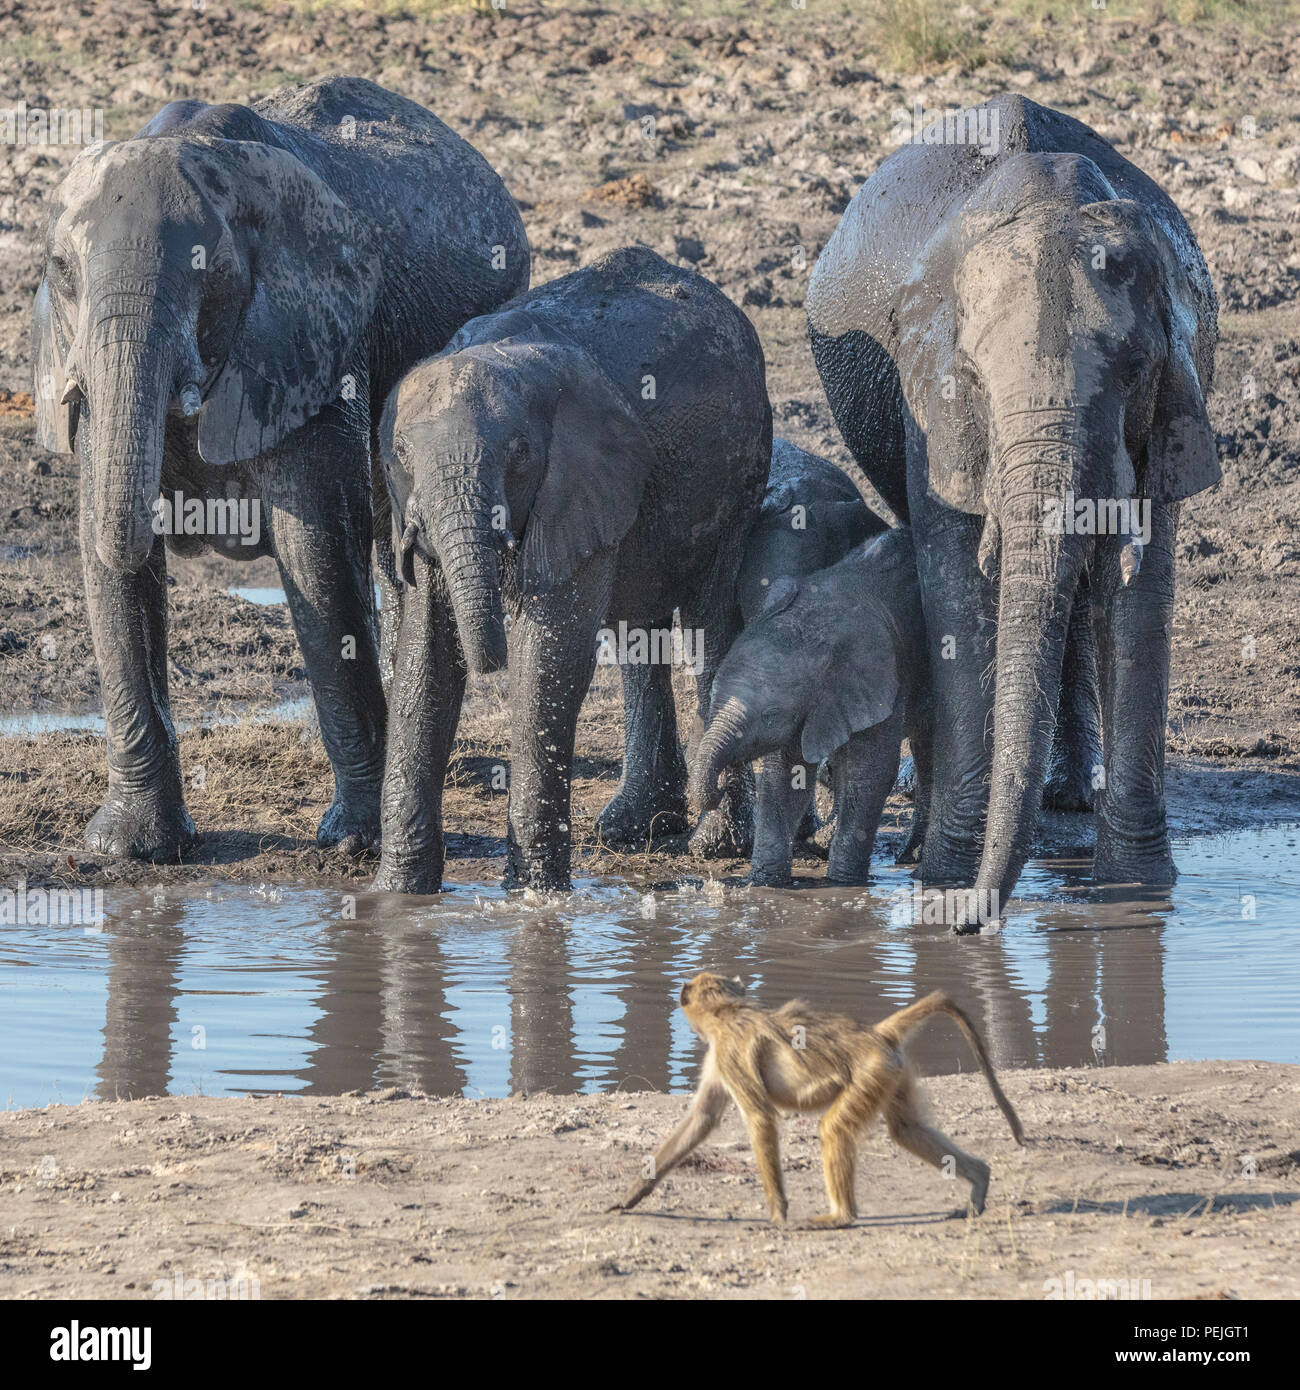 Baboon saunters past a herd of African elephants at a watering hole, Chobe National Park, Botswana - Stock Image